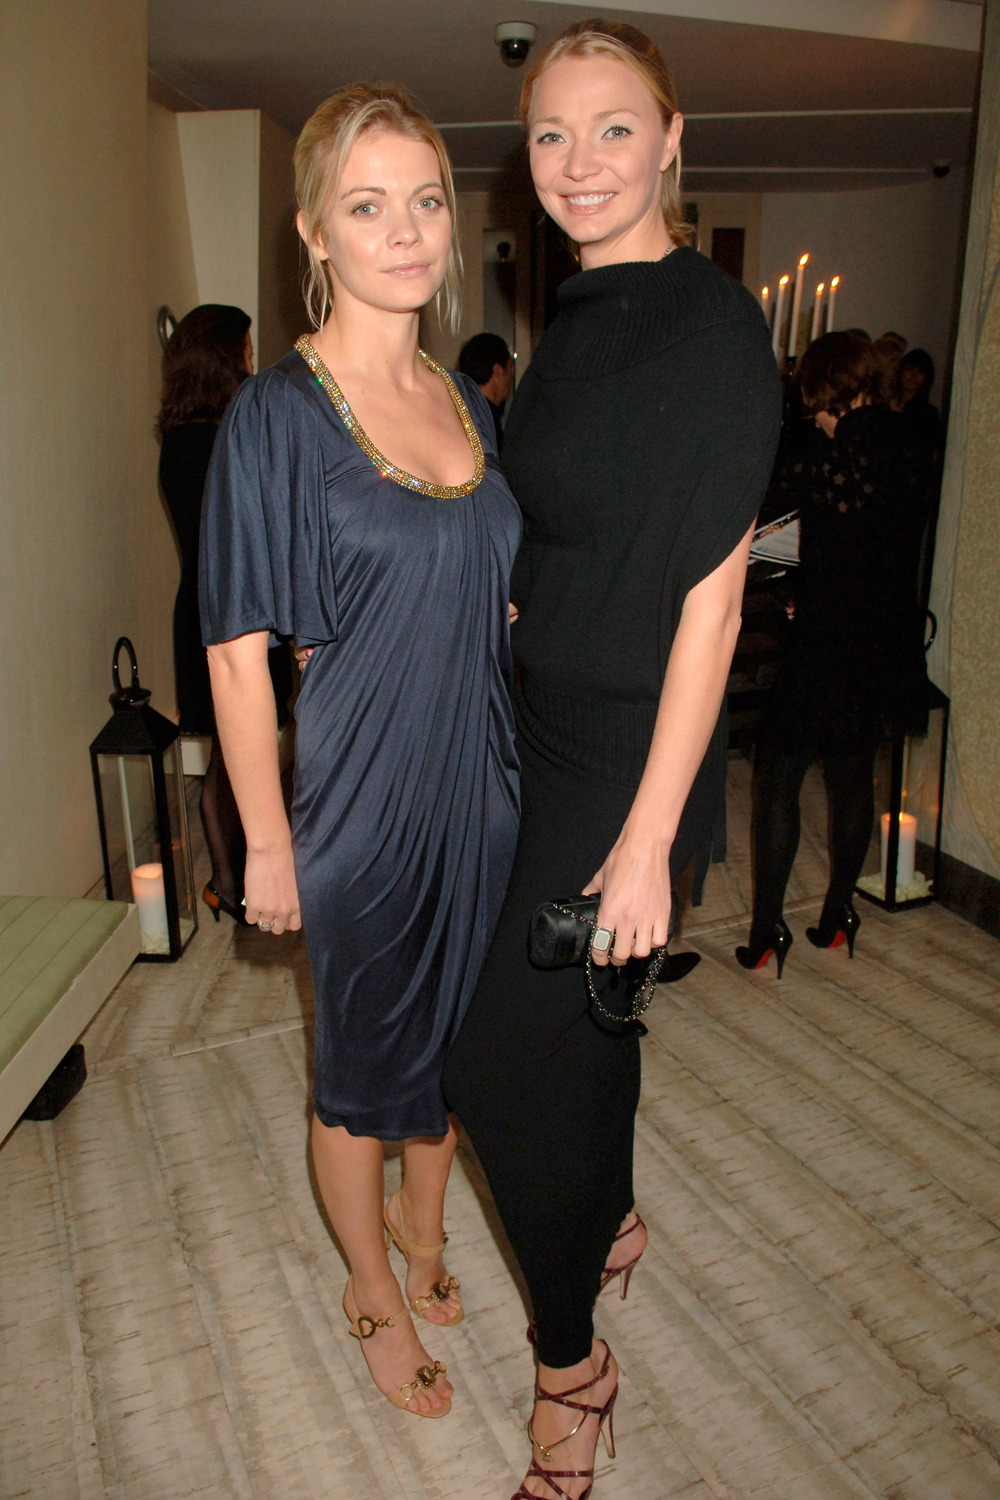 Photo of Jodie Kidd & her friend celebrity  Jo -